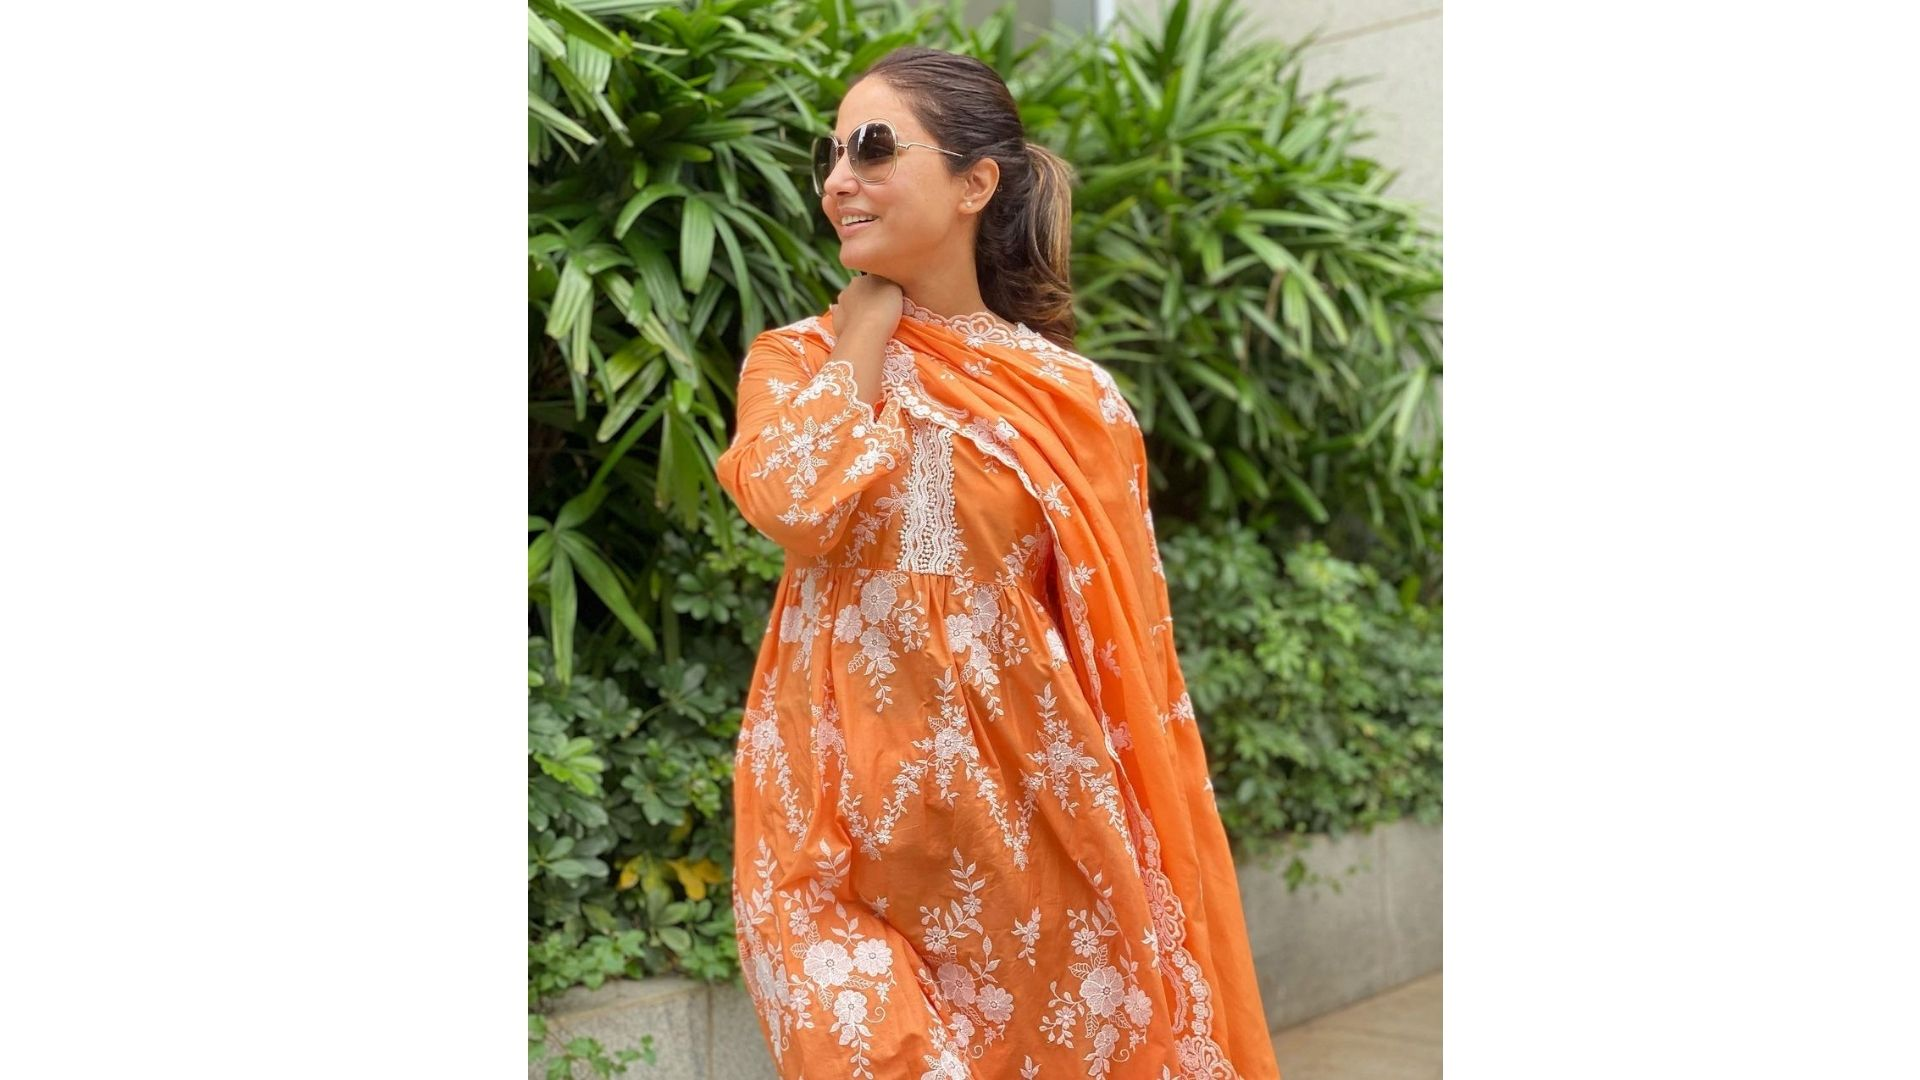 Hina Khan Reveals She Was Rejected For A Kashmiri Girl's Role Because Of Her Dusky Complexion; Makes Shocking Revelations